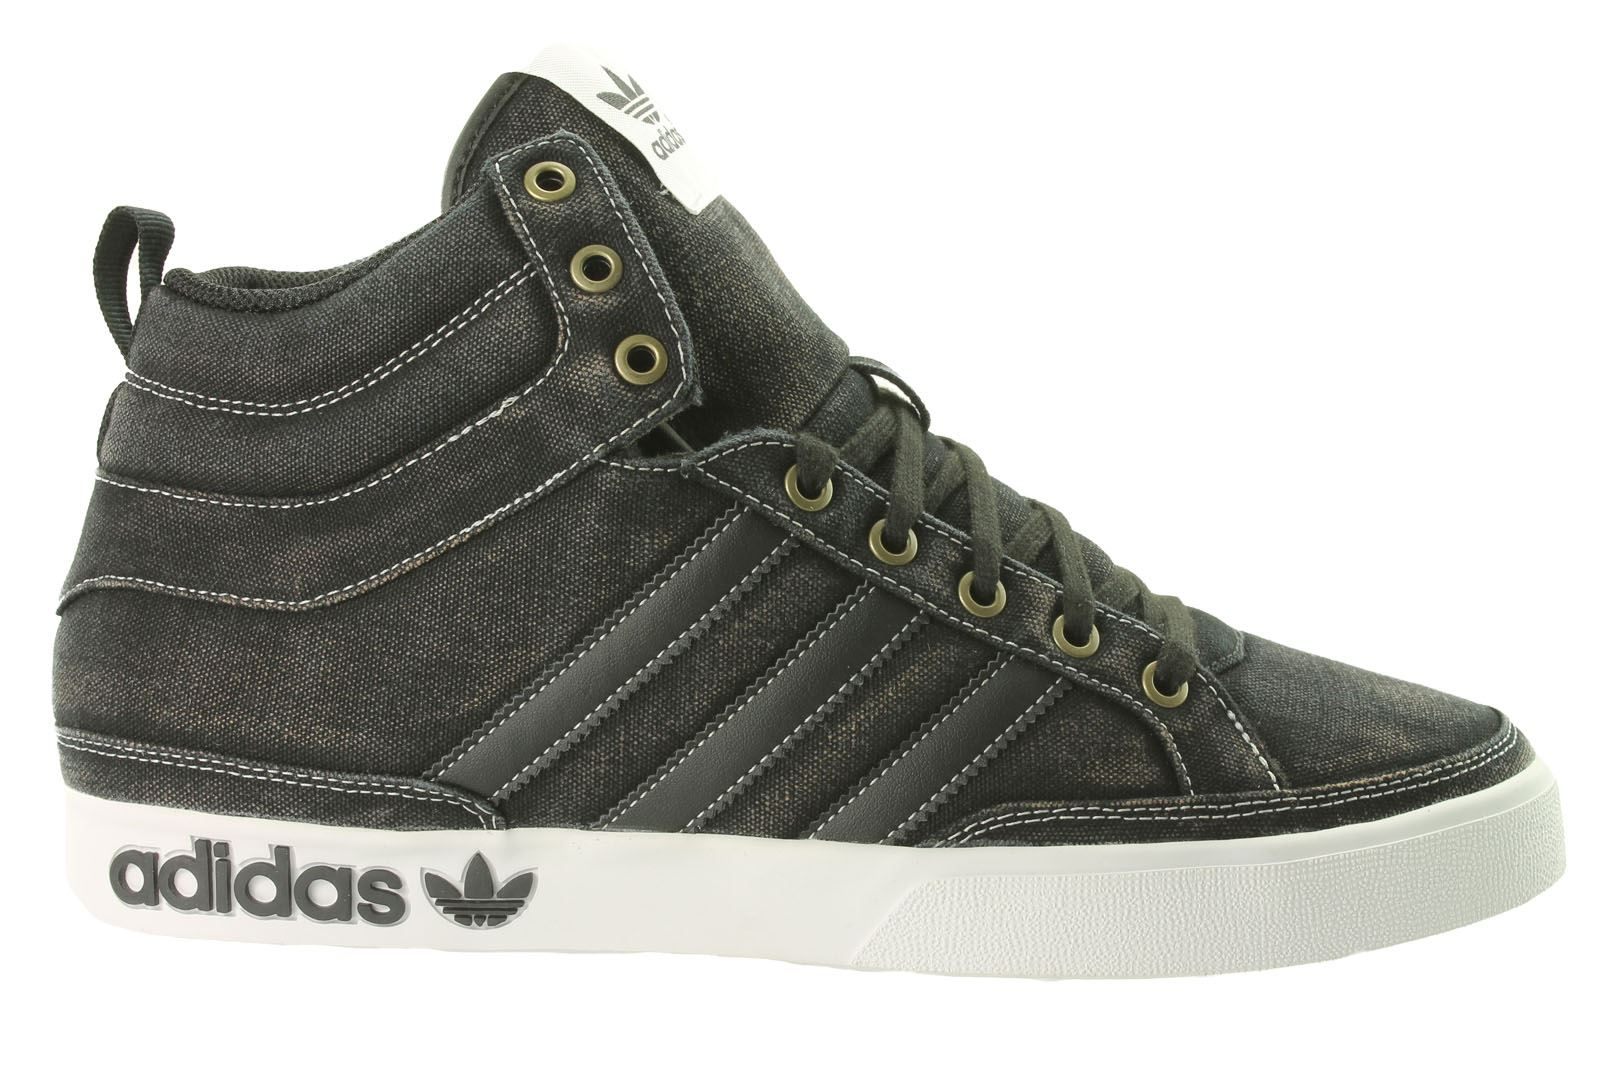 adidas hardcourt high tops